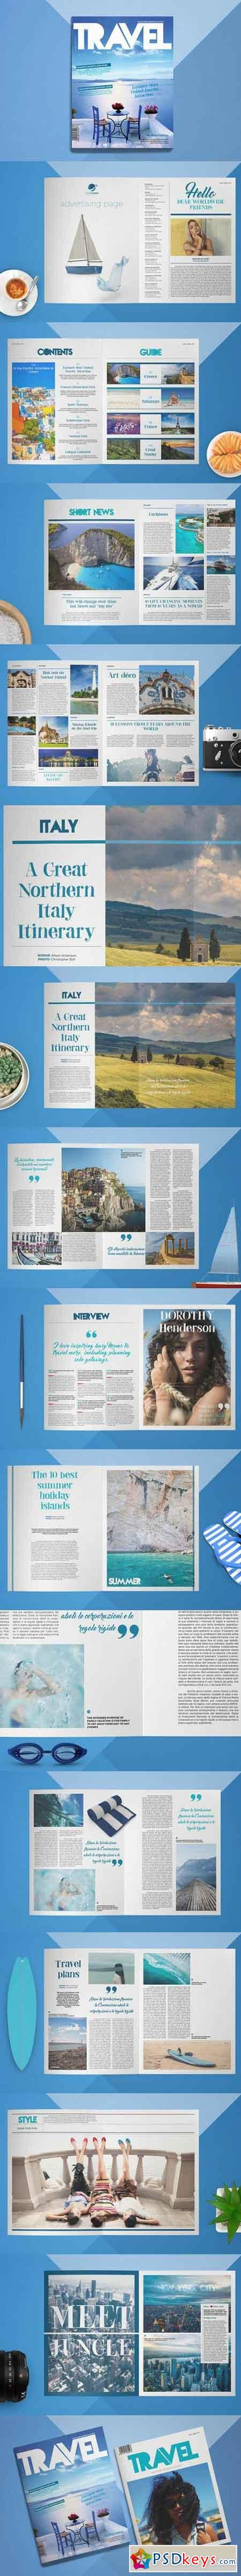 Travel Magazine 809936